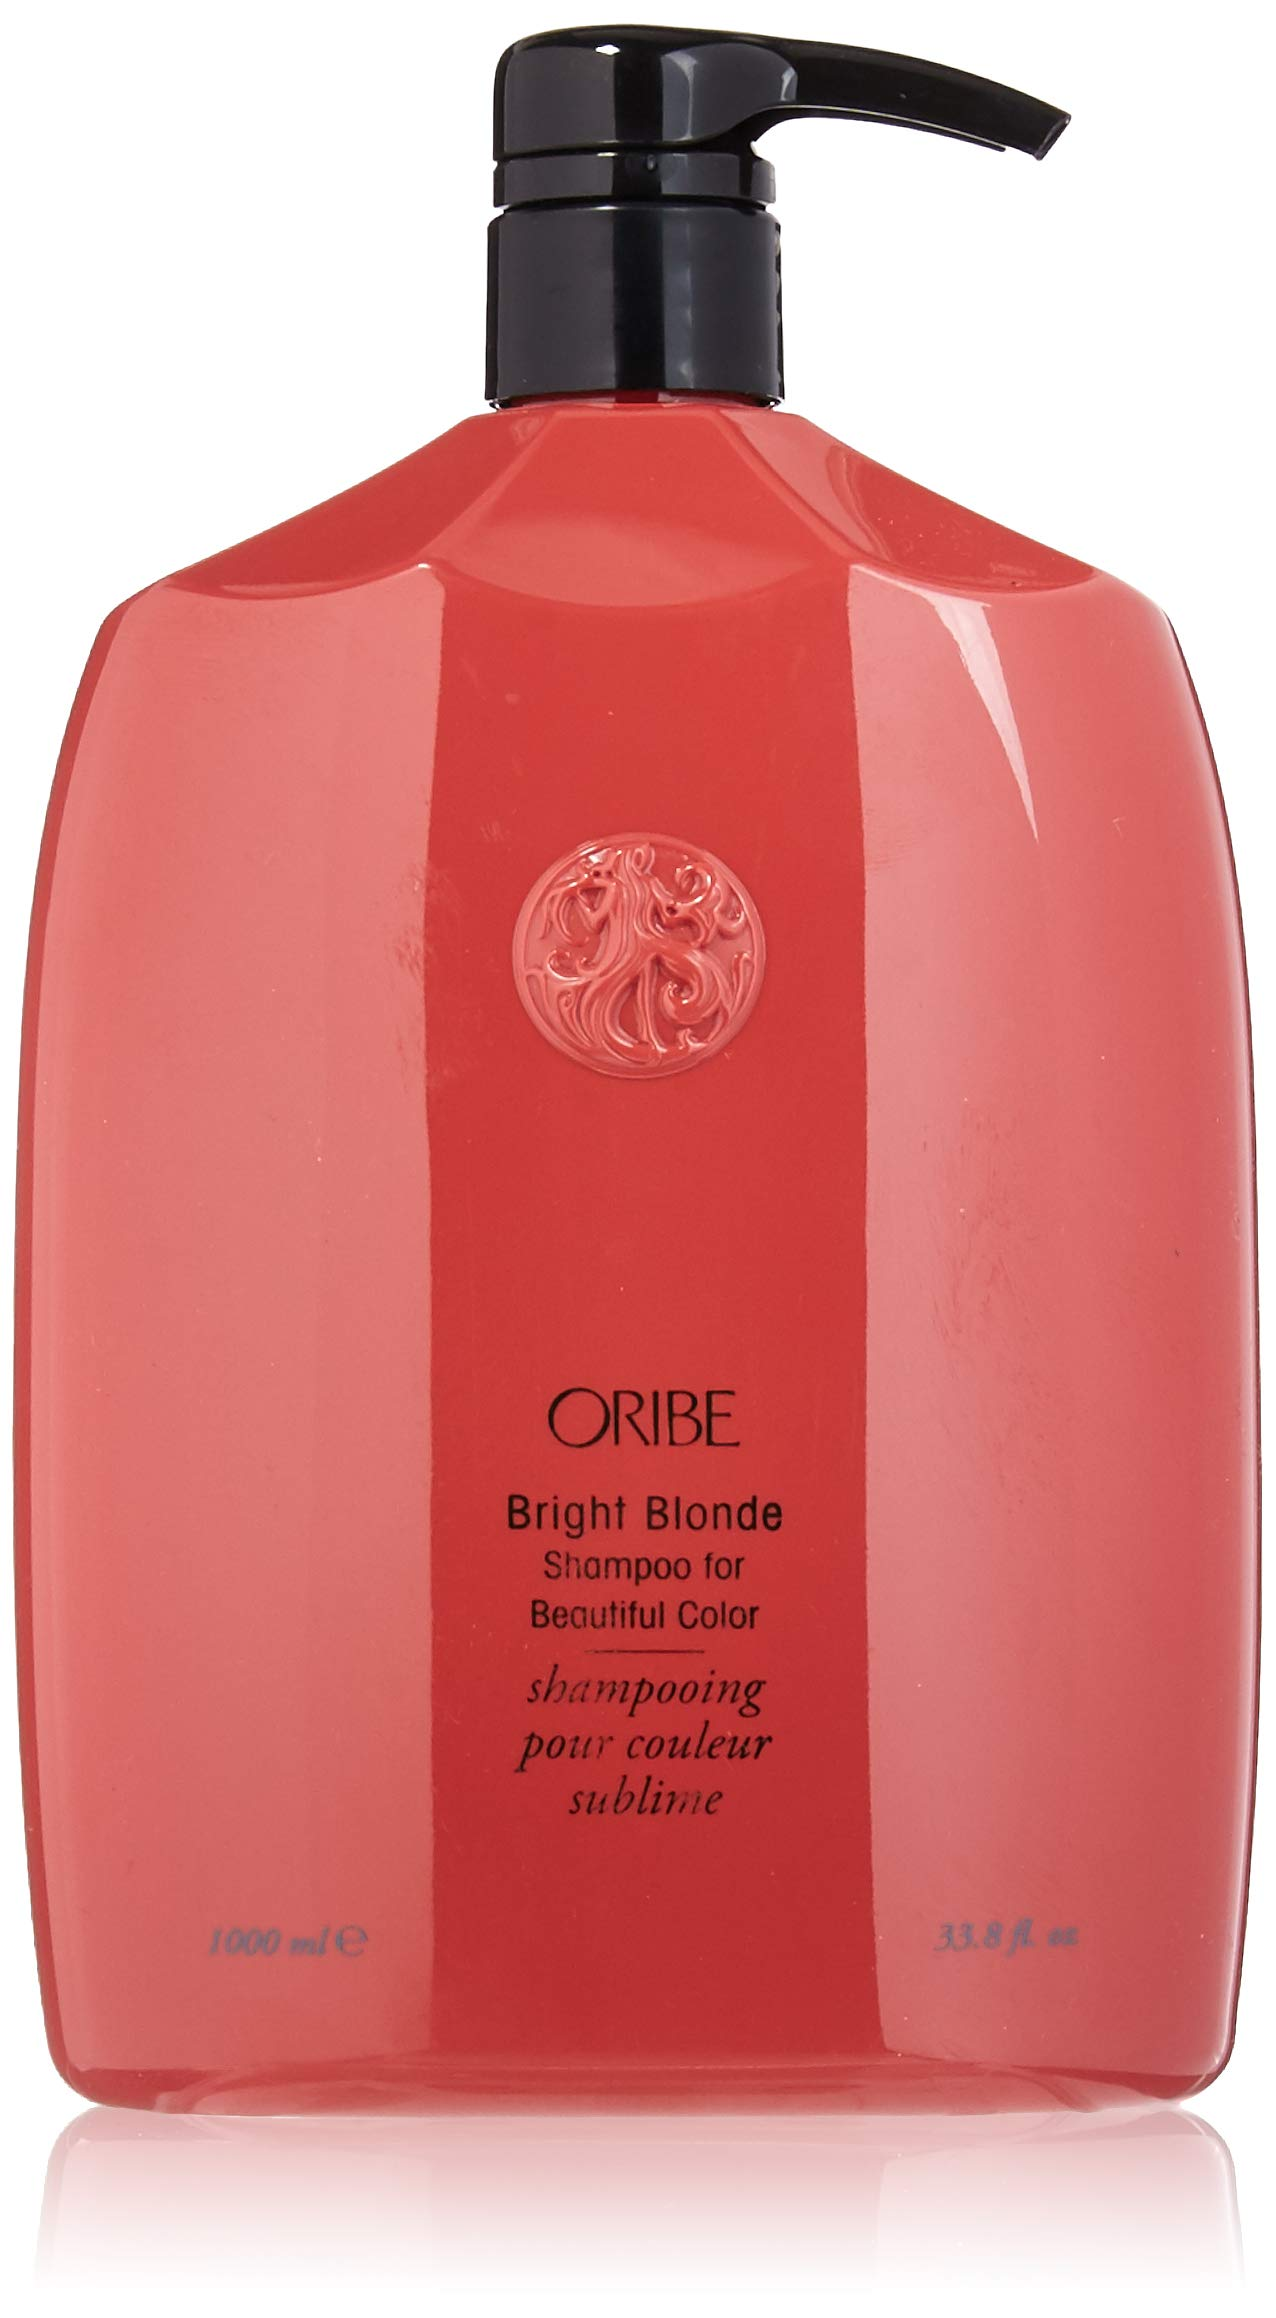 ORIBE Bright Blonde Shampoo, 33.8 Fl Oz